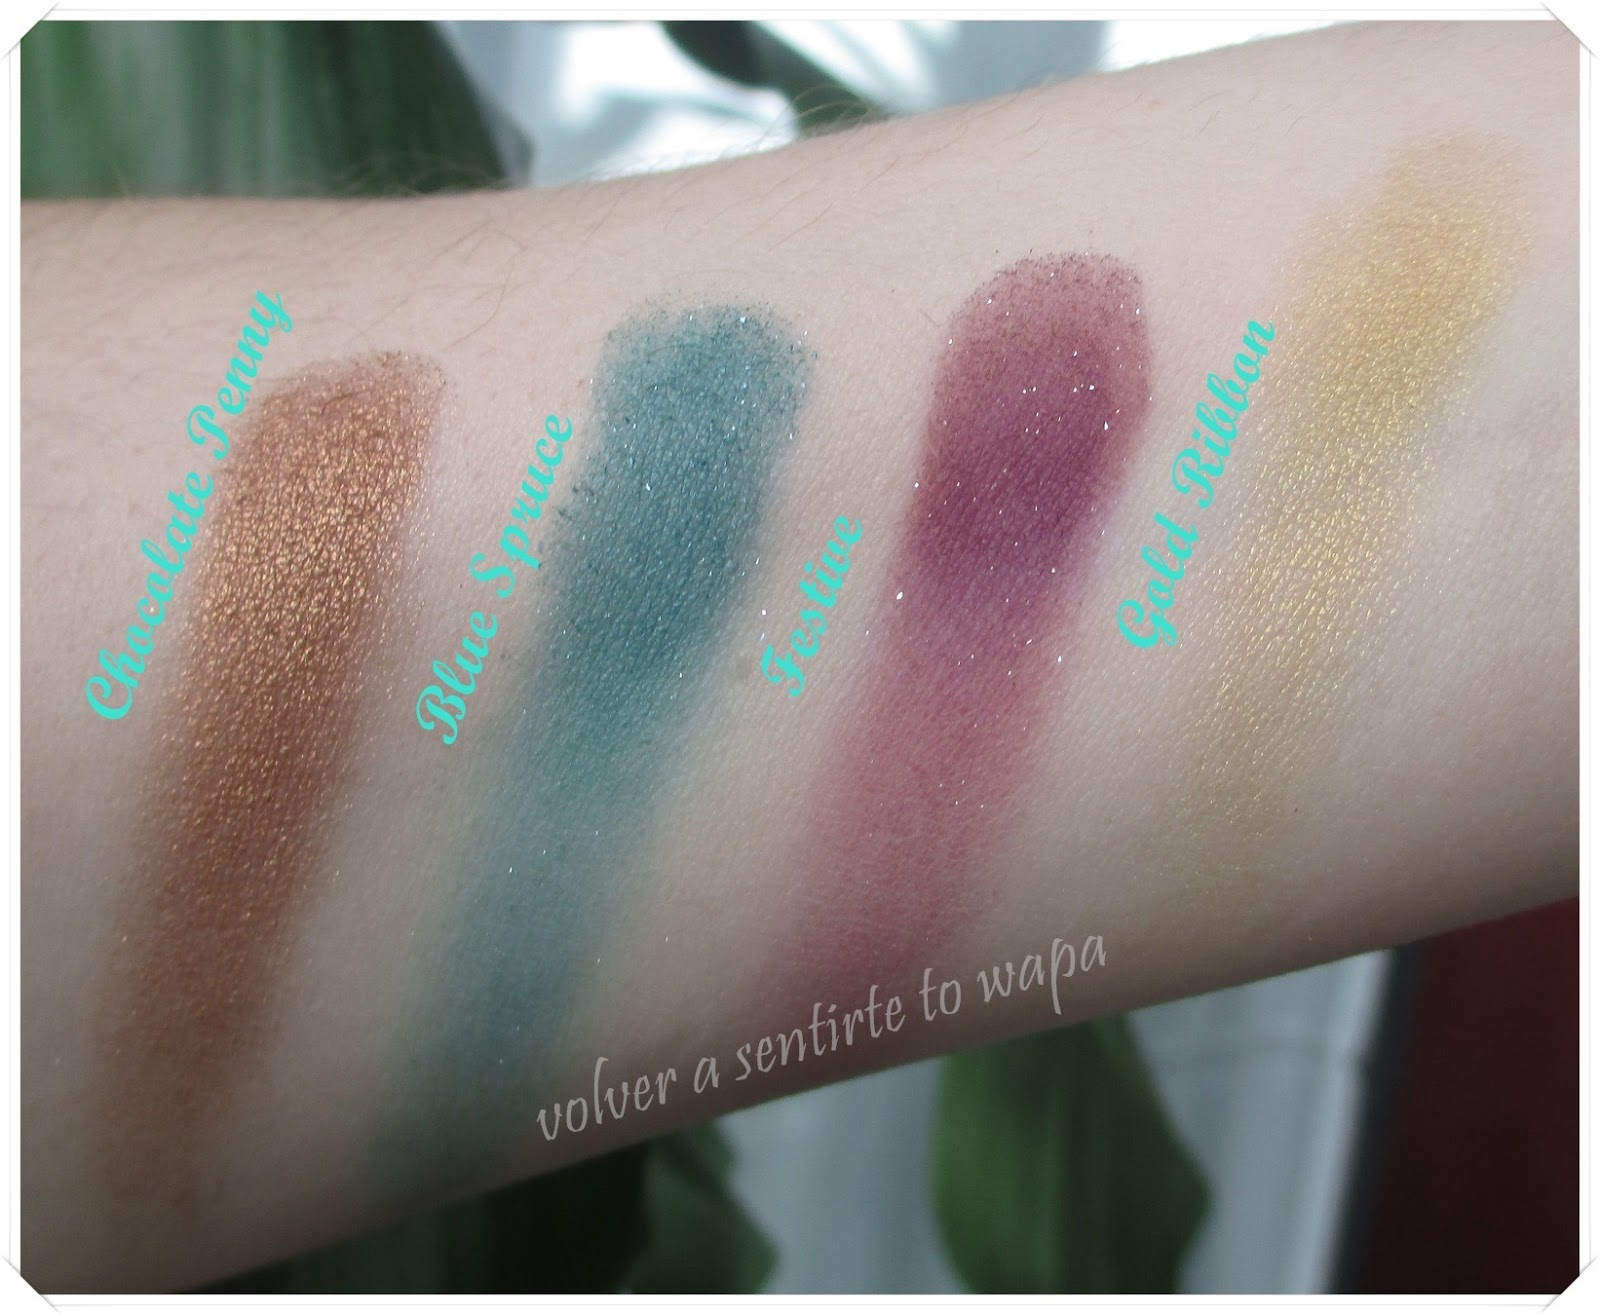 SPARKLE 2 de SLEEK - Review & Swatches